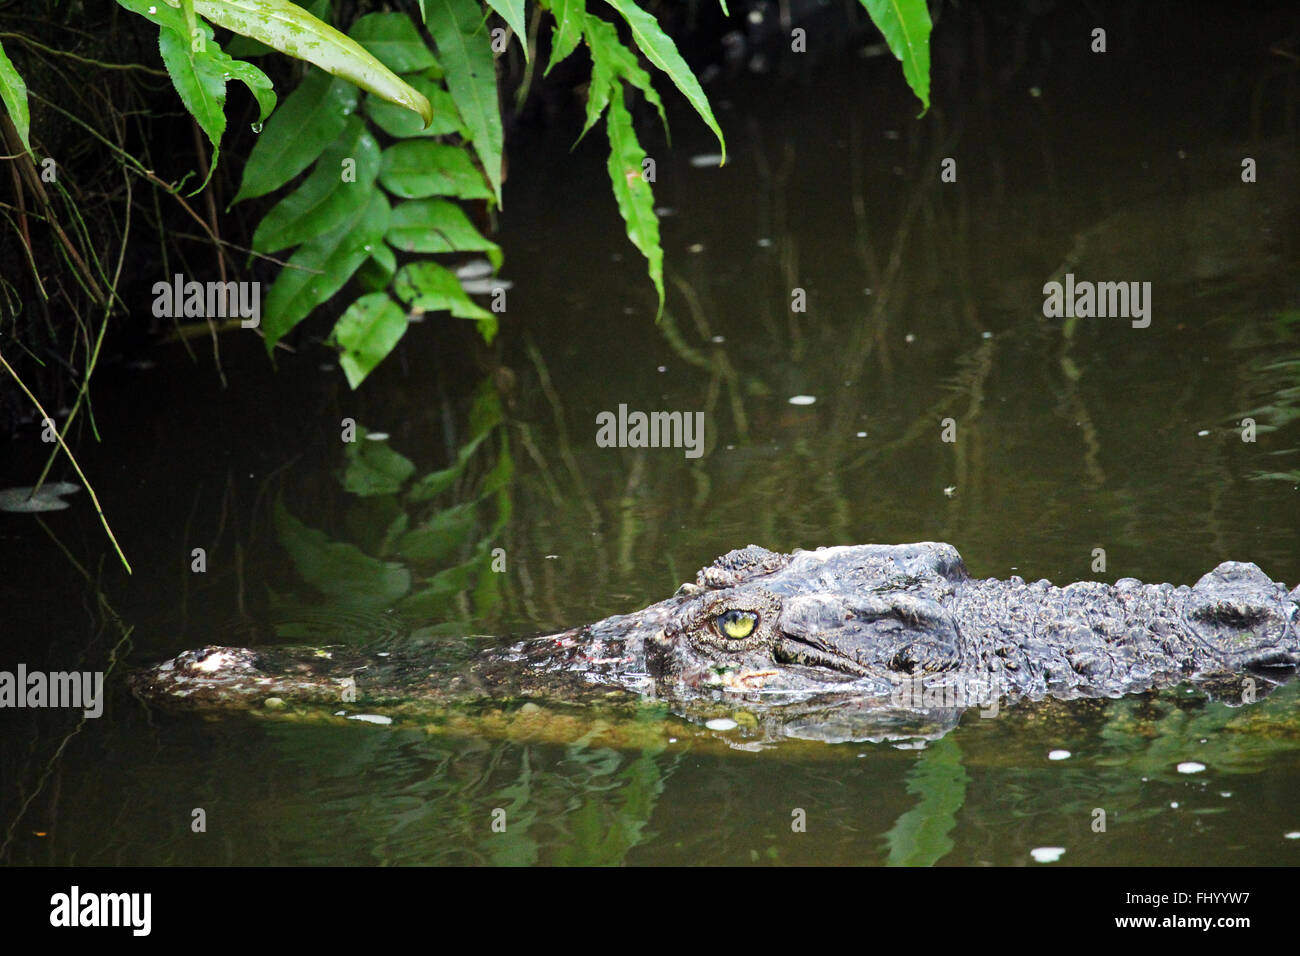 MIRI/MALAYSIA - 24 NOVEMBER 2015: A crocodile in the fresh water north of Miri in Borneo next to the the border Stock Photo